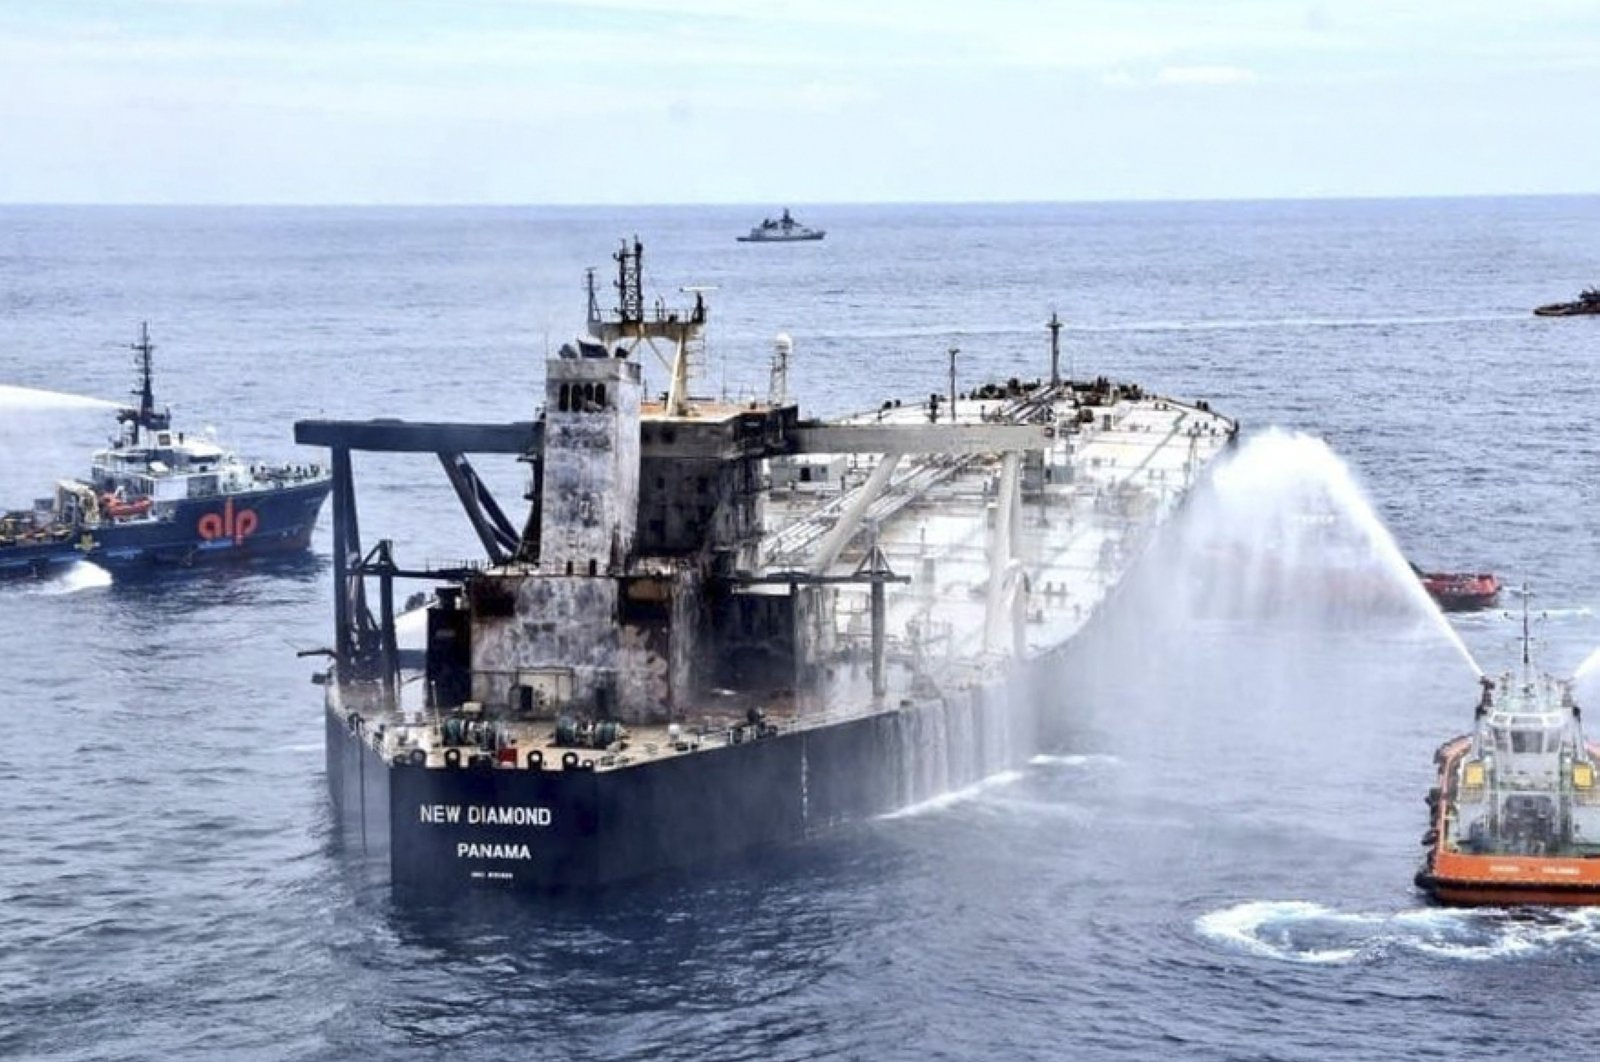 This handout photograph taken on Sept. 6, 2020, and released by Sri Lanka's Air Force shows the Panamanian-registered crude oil tanker New Diamond after a fire aboard was extinguished, some 60 kilometers off Sri Lanka's eastern coast where a fire was reported inside the engine room. (Sri Lanka's Air Force Photo via AFP)